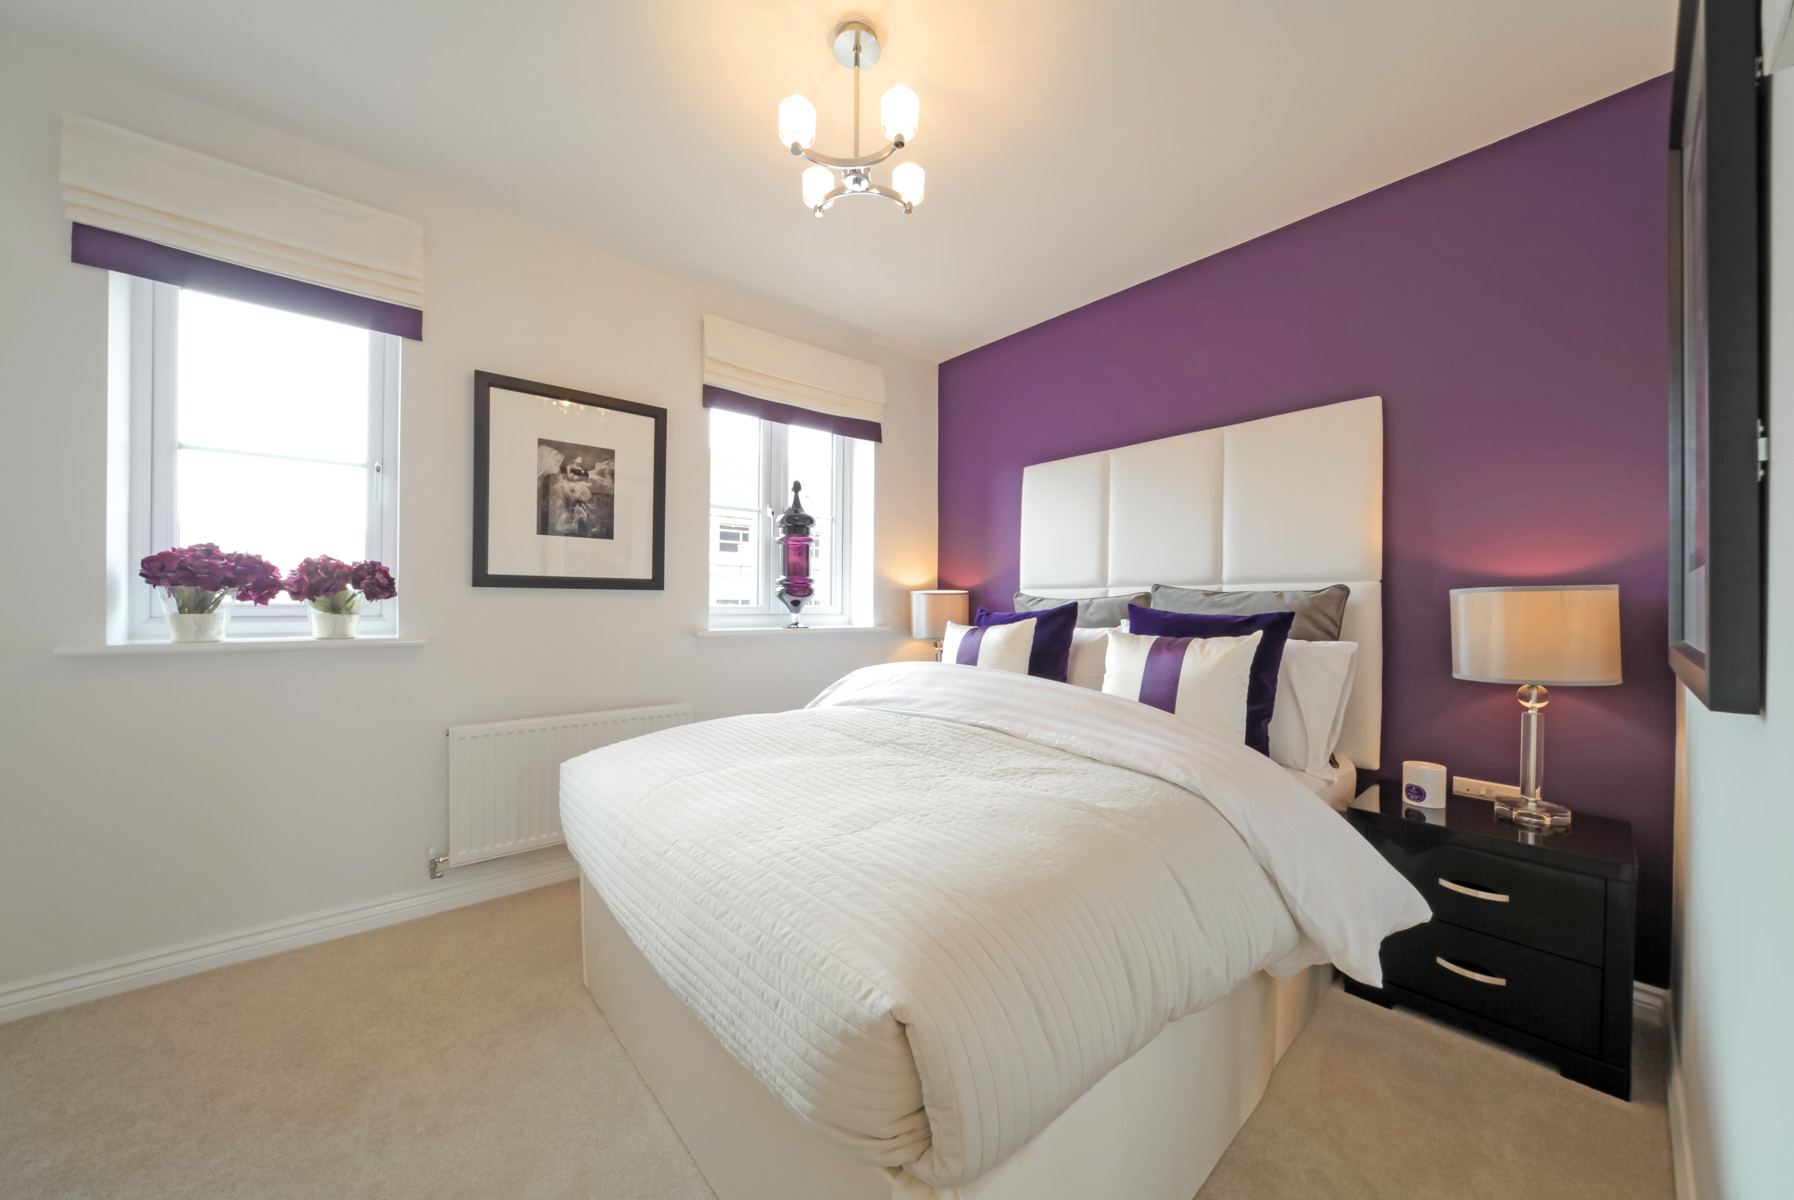 TW Exeter - Cranbrook - Beckford example bedroom